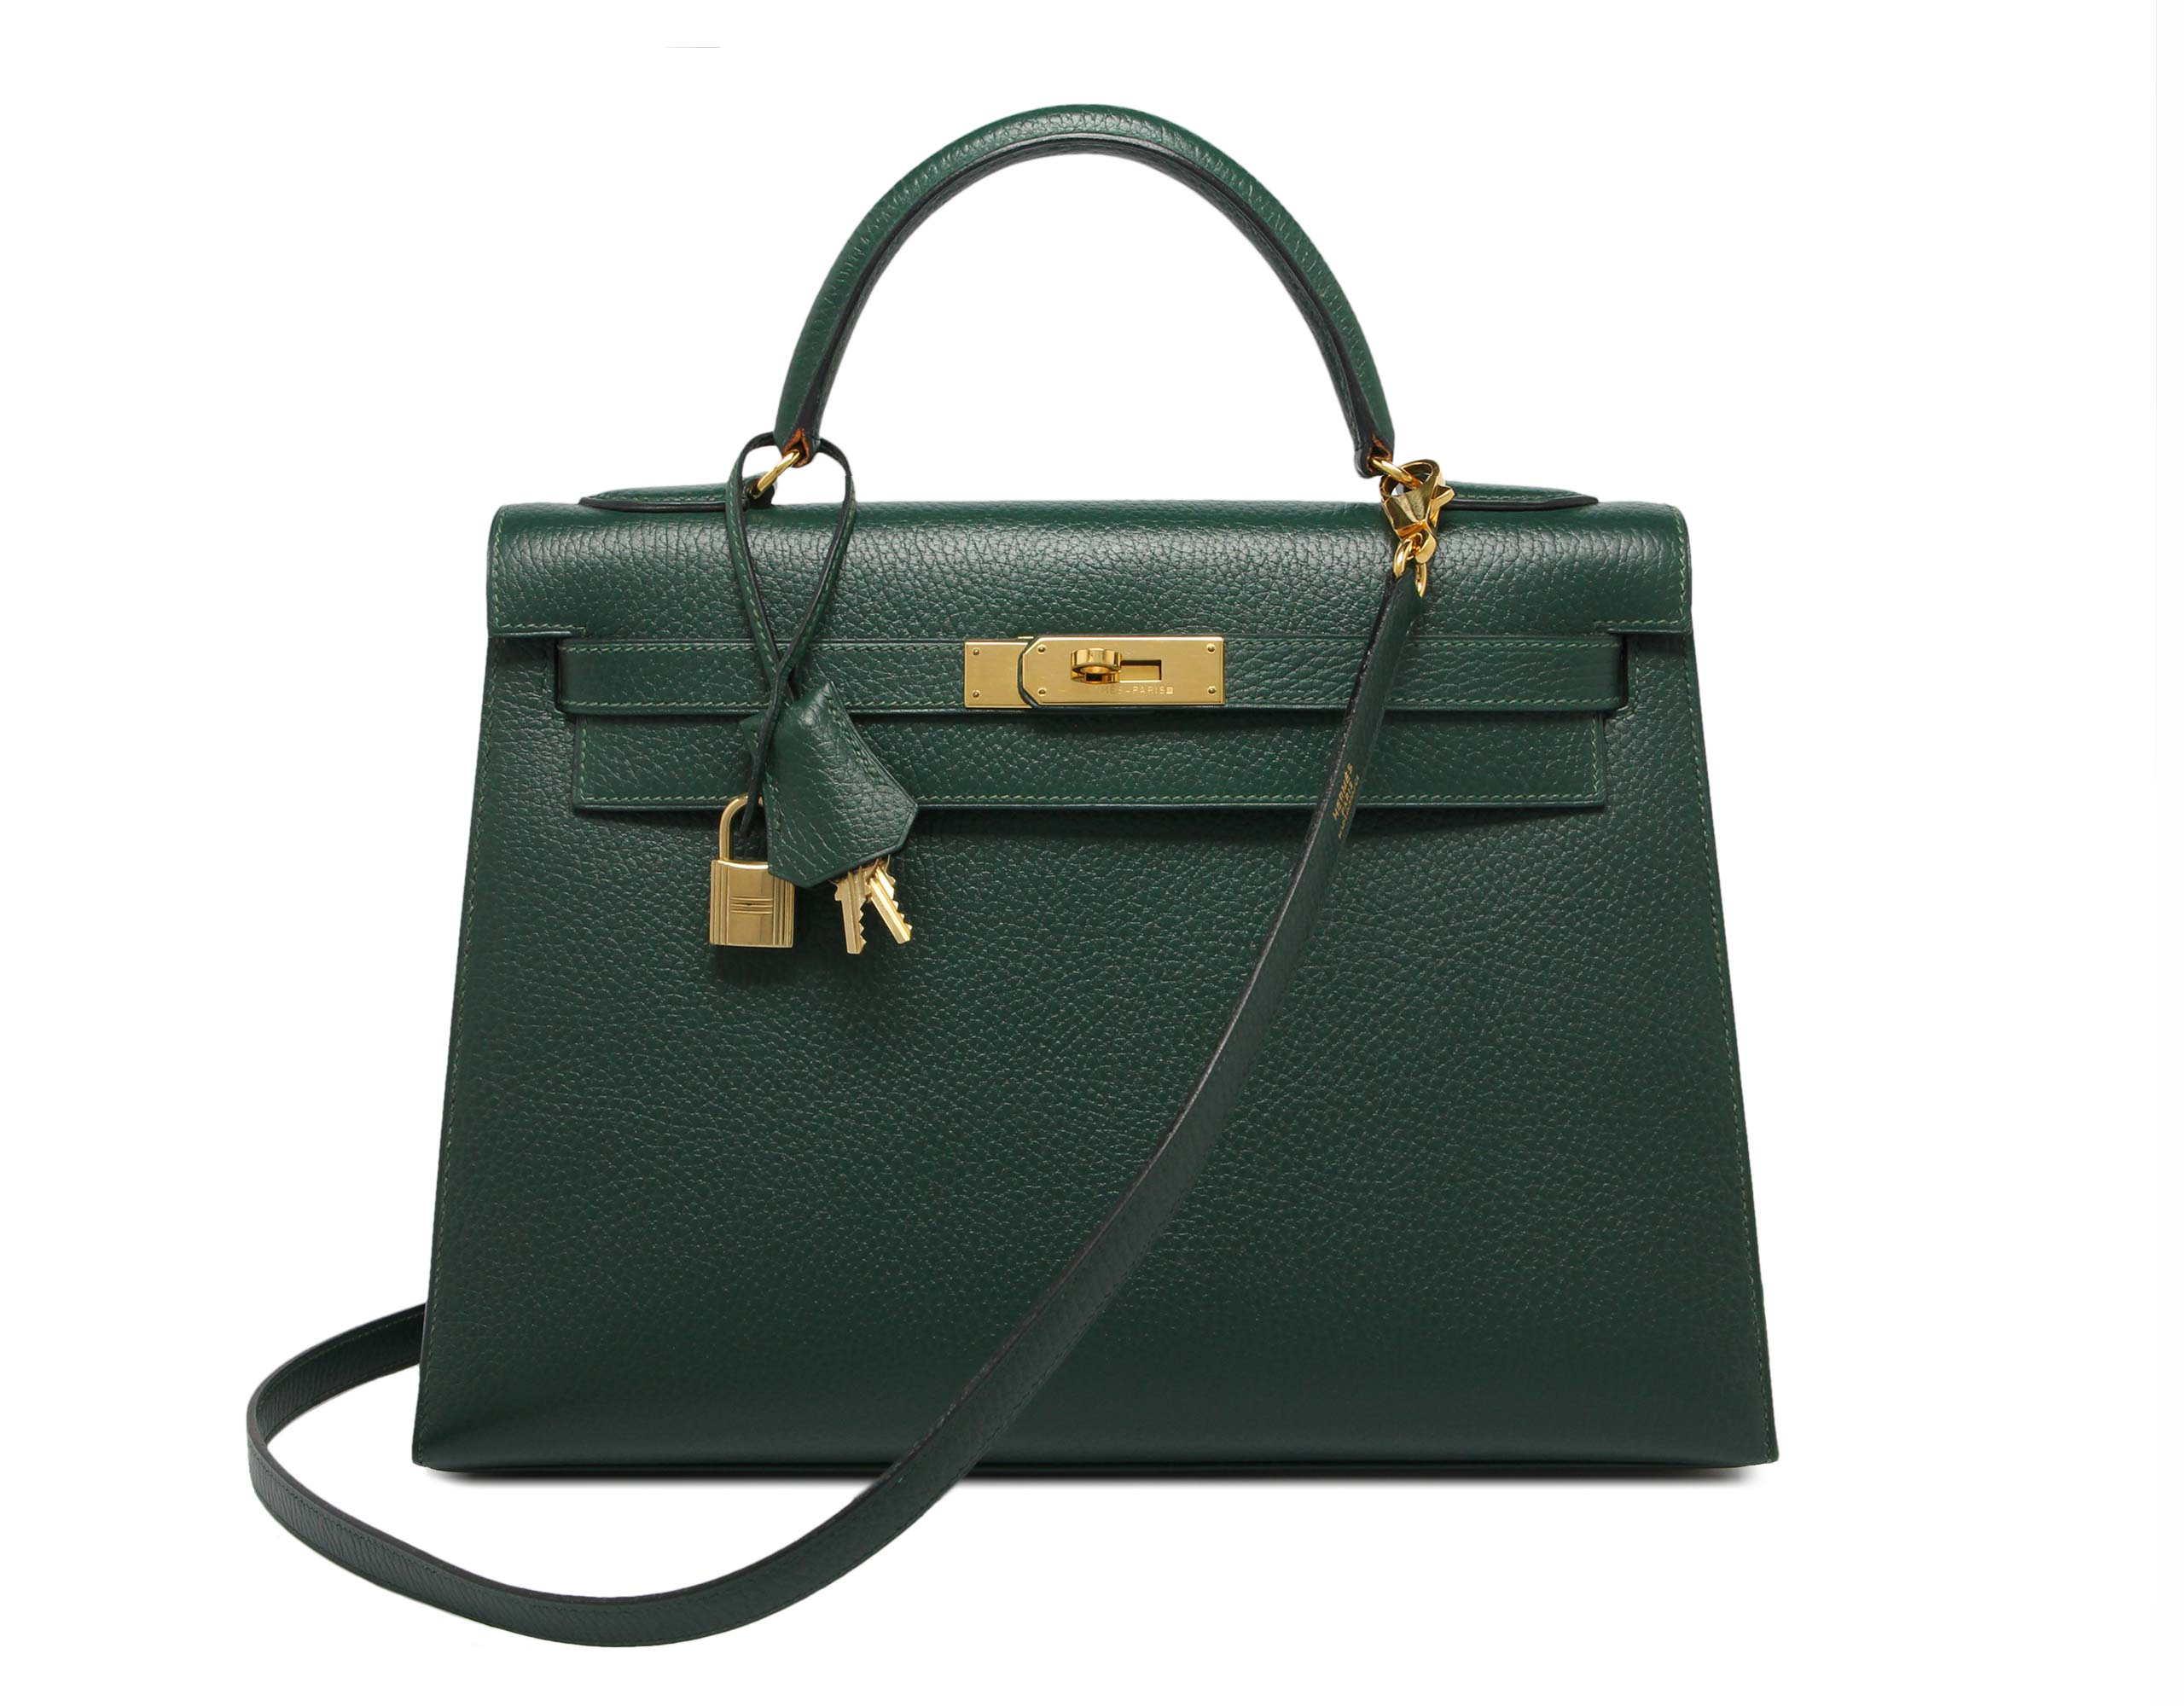 32cm Kelly Vert Clair Ardennes with Gold Hardware